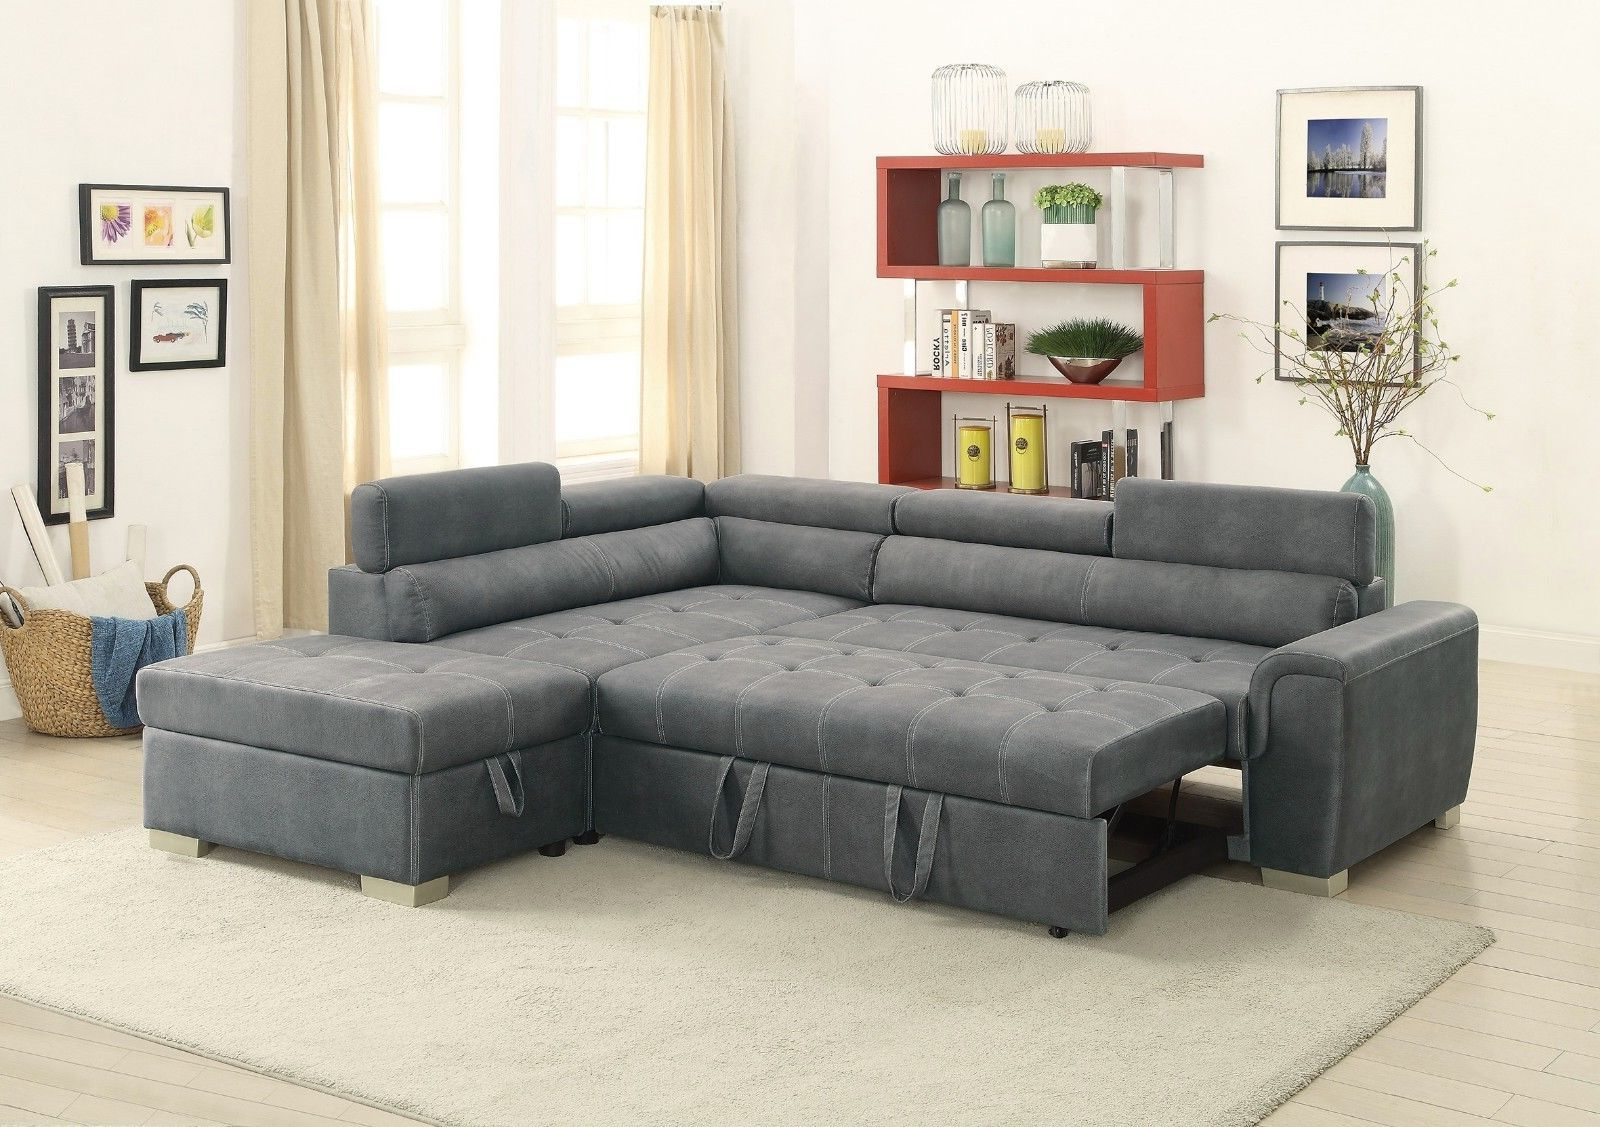 2019 Sectional Grey Breathable Leatherette Chaise Pull Out Sofa Bed Inside Calder Grey 6 Piece Manual Reclining Sectionals (View 9 of 20)